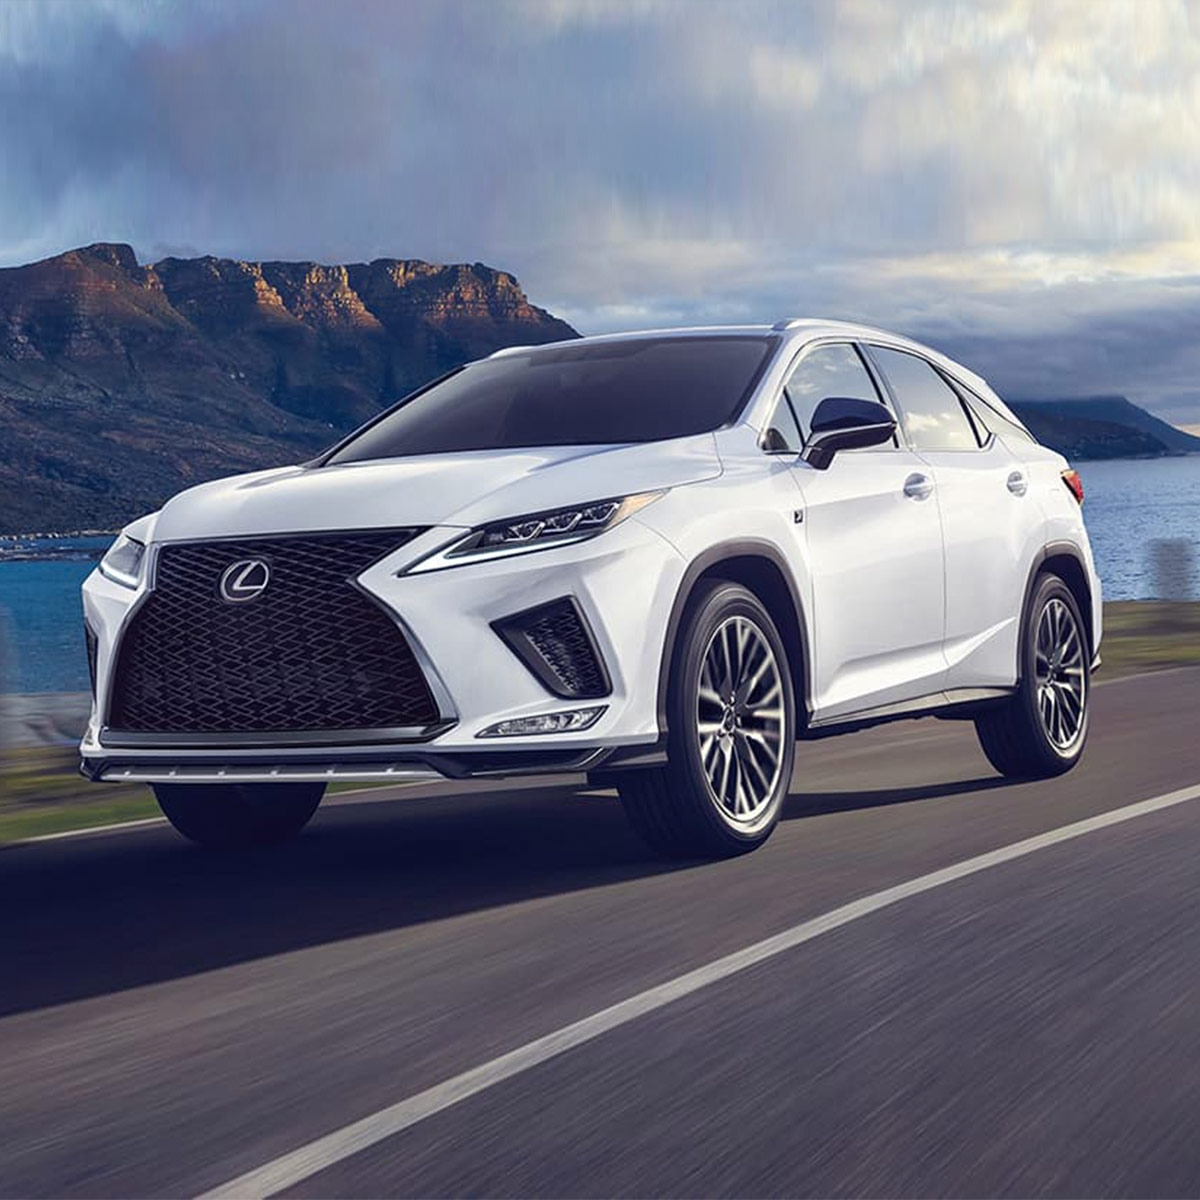 side profile of lexus RX suv in white color driving on a pavement road next to a lake with mountains in the background